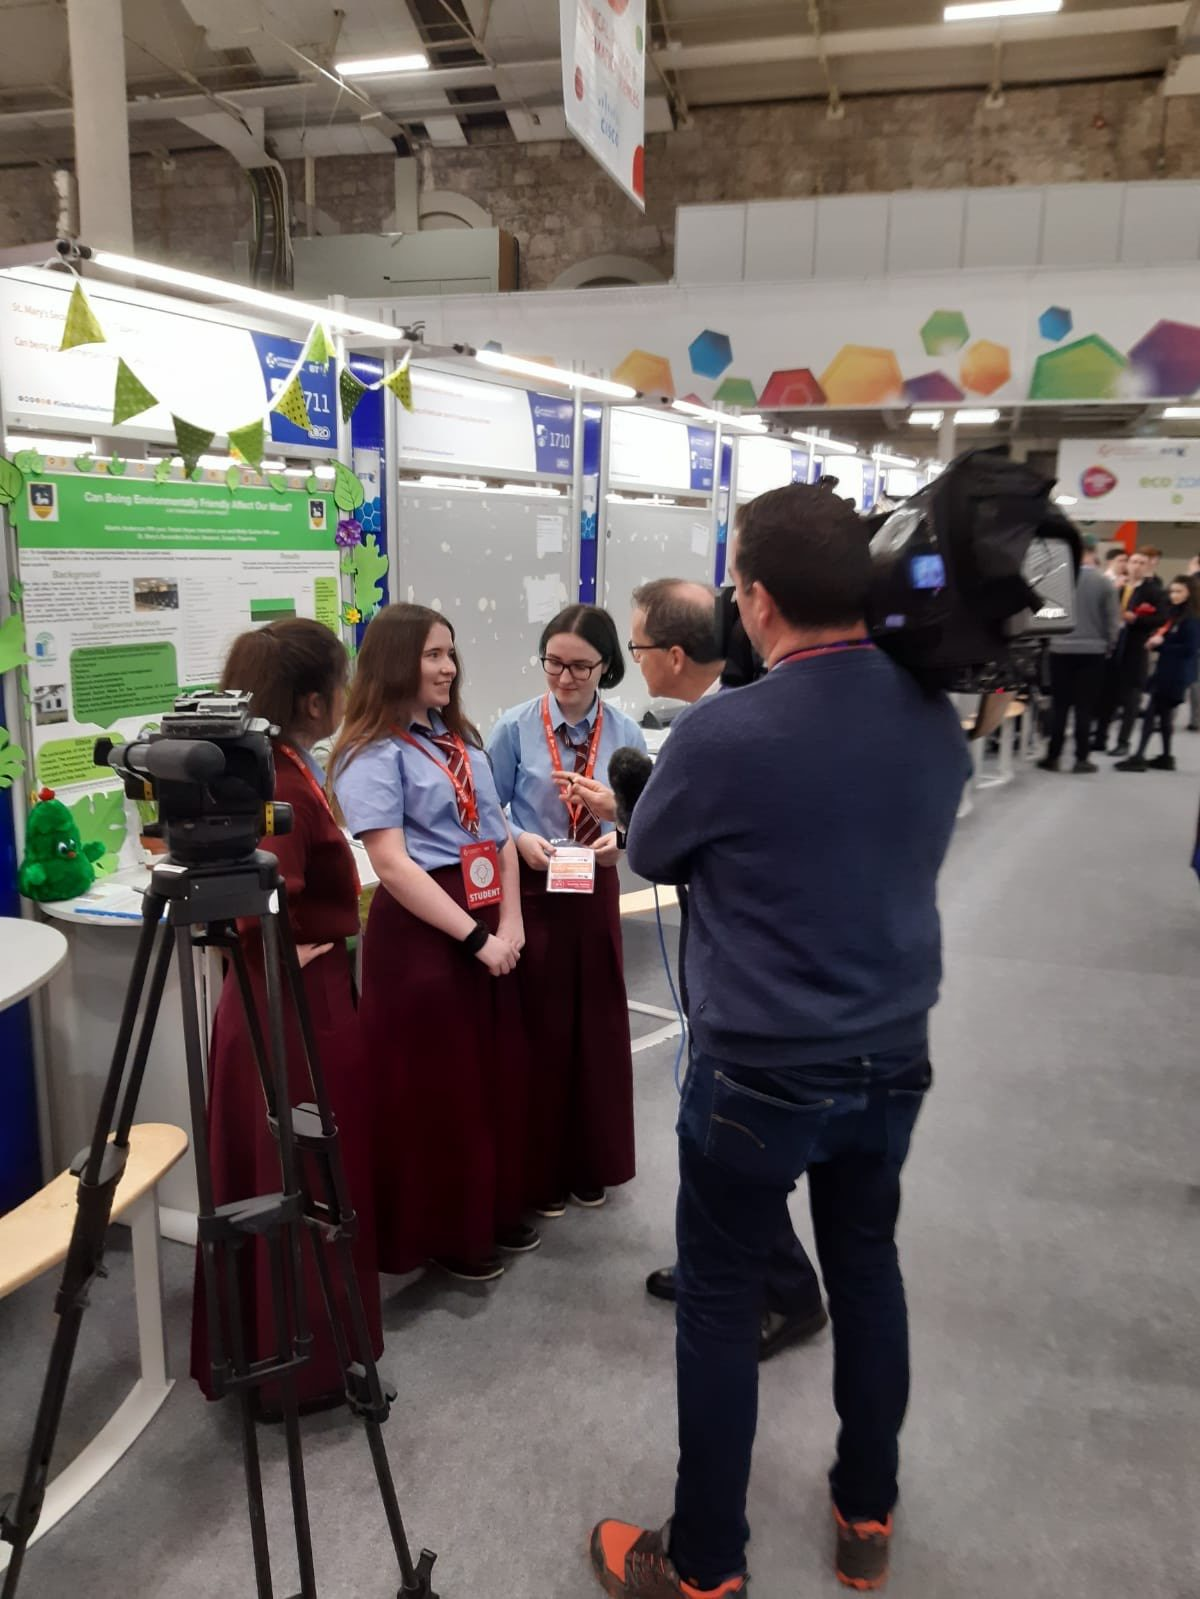 St. Mary's Represented at BT Young Scientist